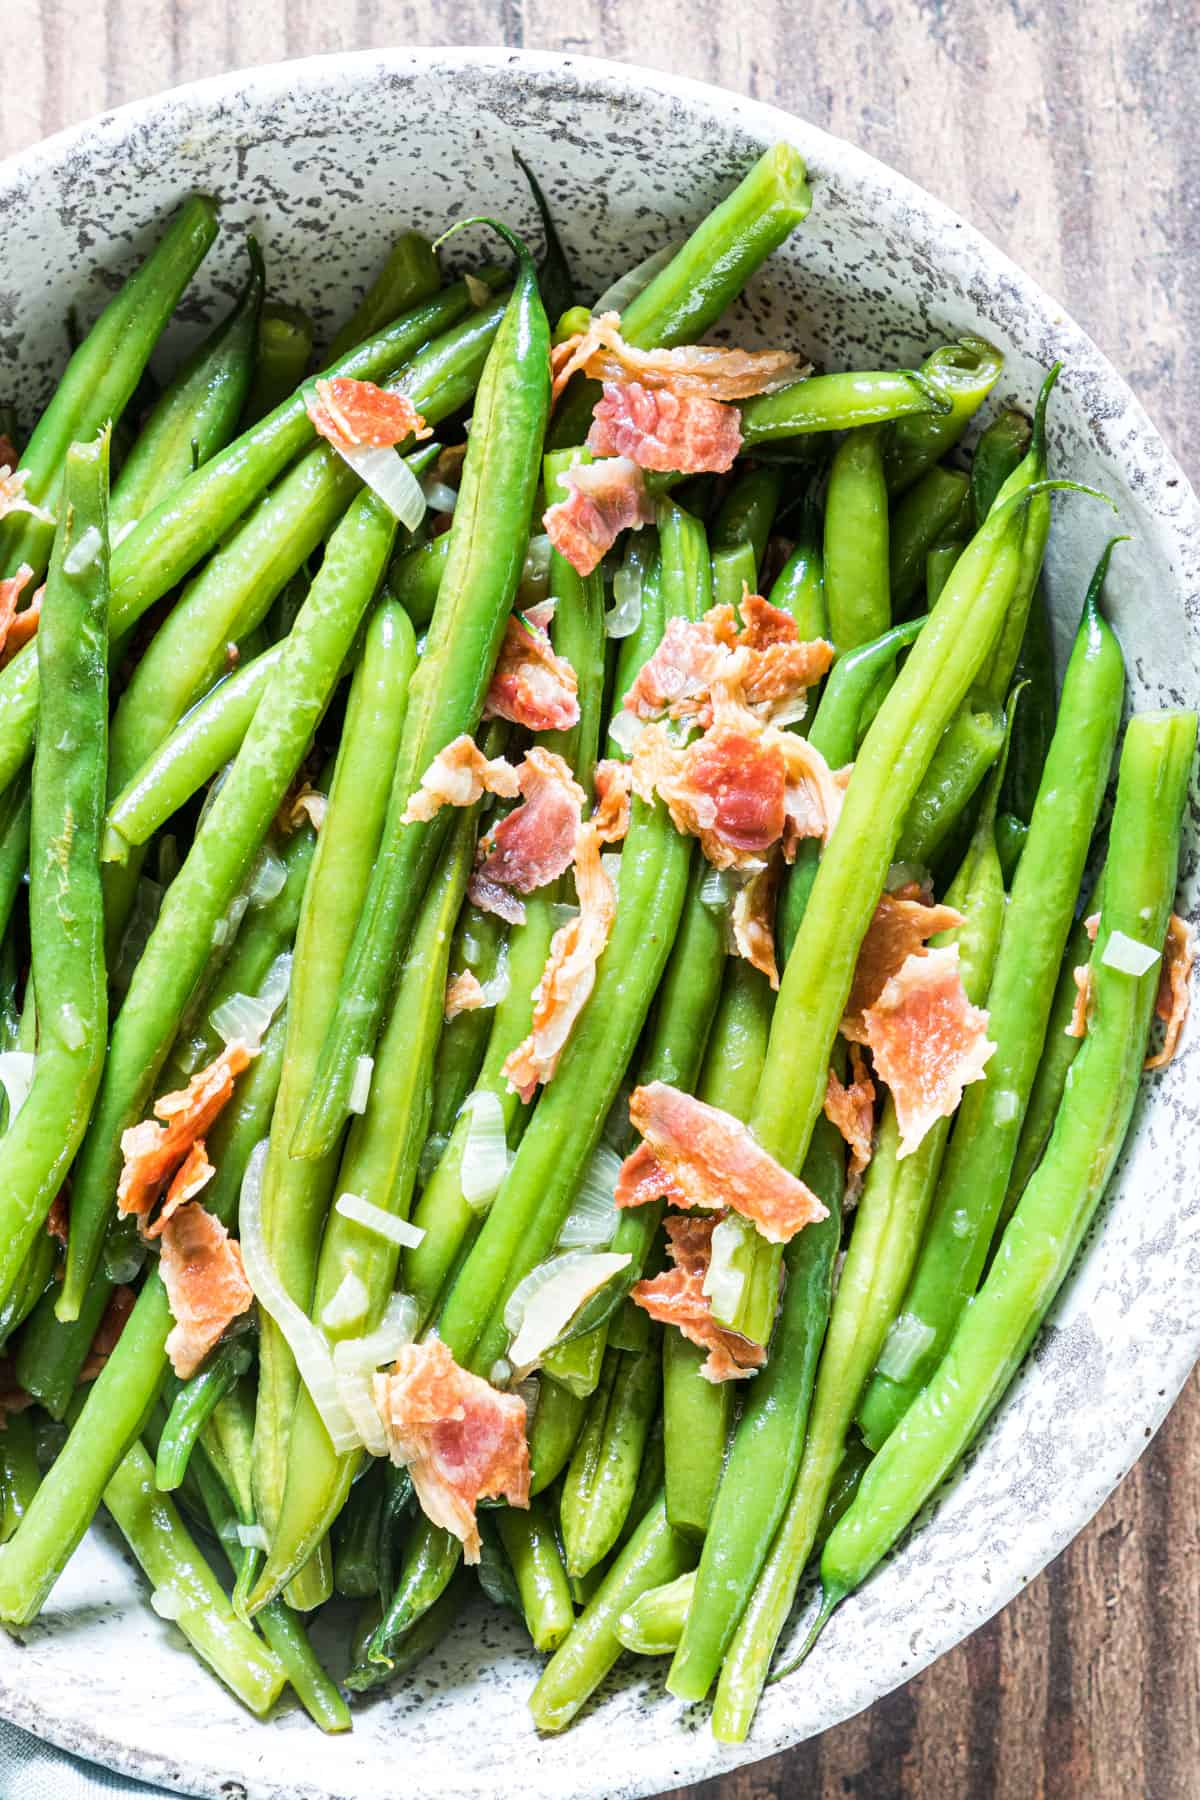 the smothered green beans with bacon in a ceramic serving dish